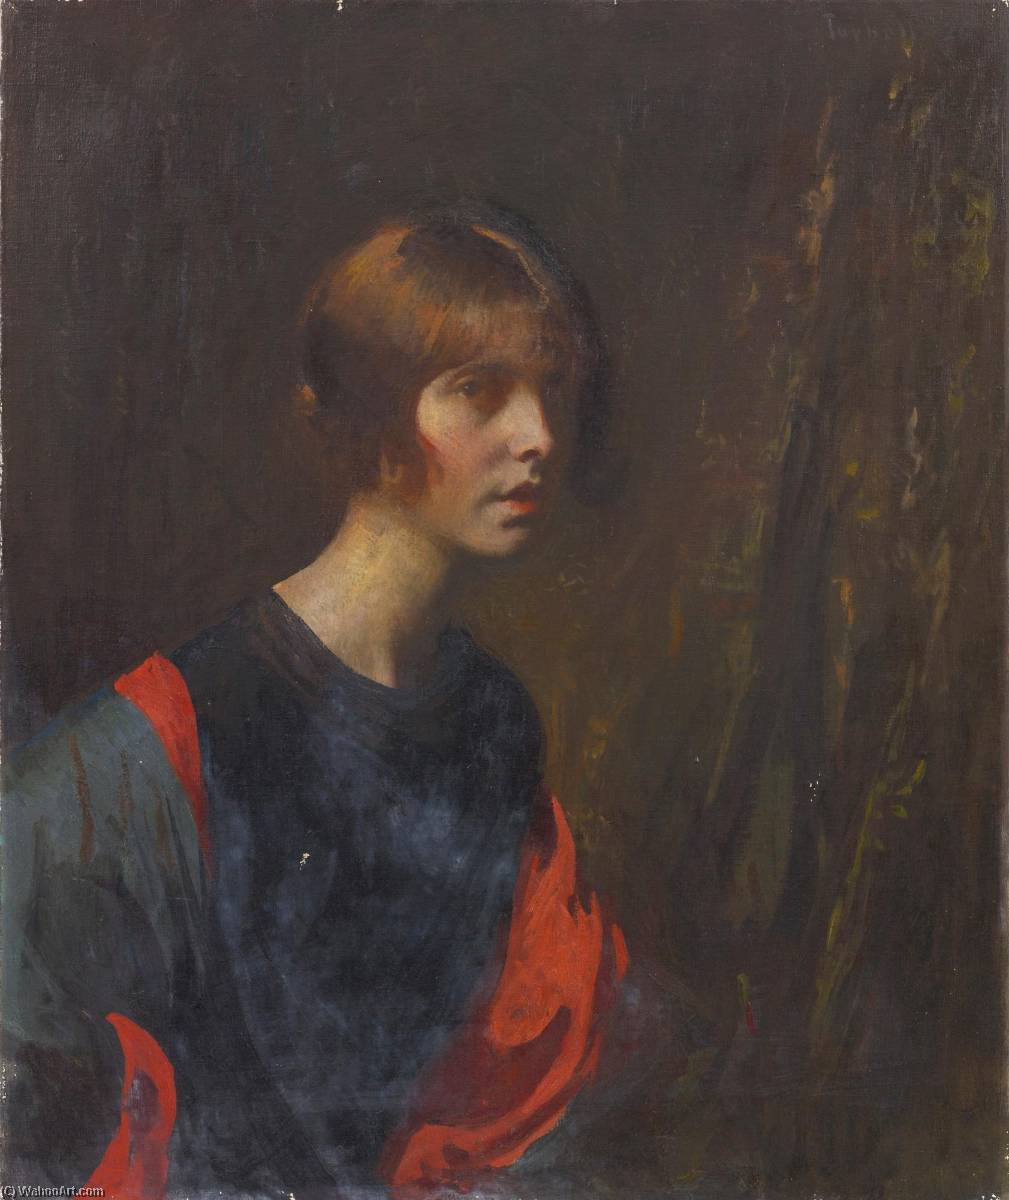 Order Paintings Reproductions Impressionism | Crimson and Gold by Edmund Charles Tarbell | TopImpressionists.com